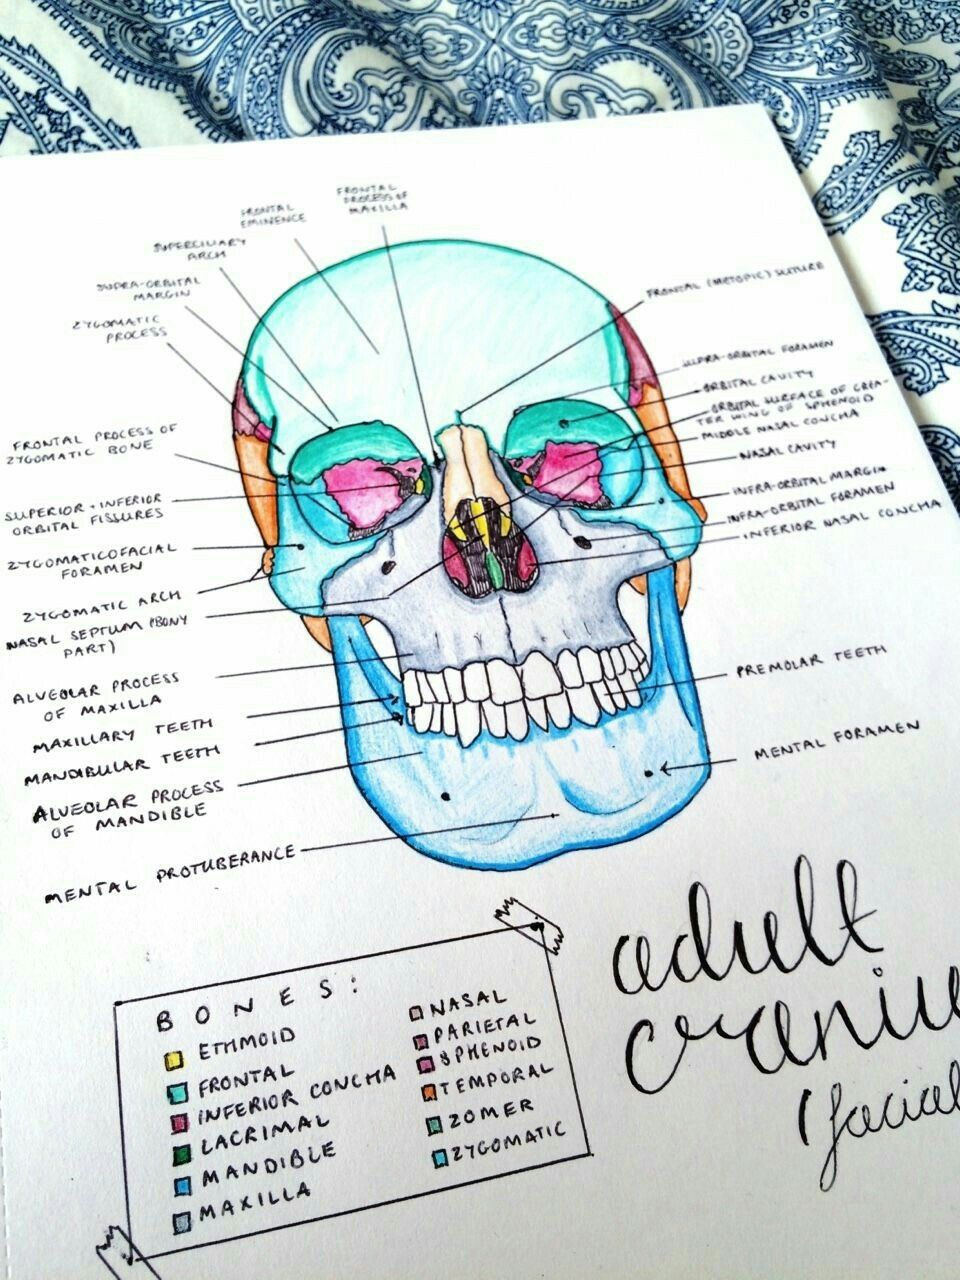 Pin By Jess On Career Study Pinterest Anatomy School And Note